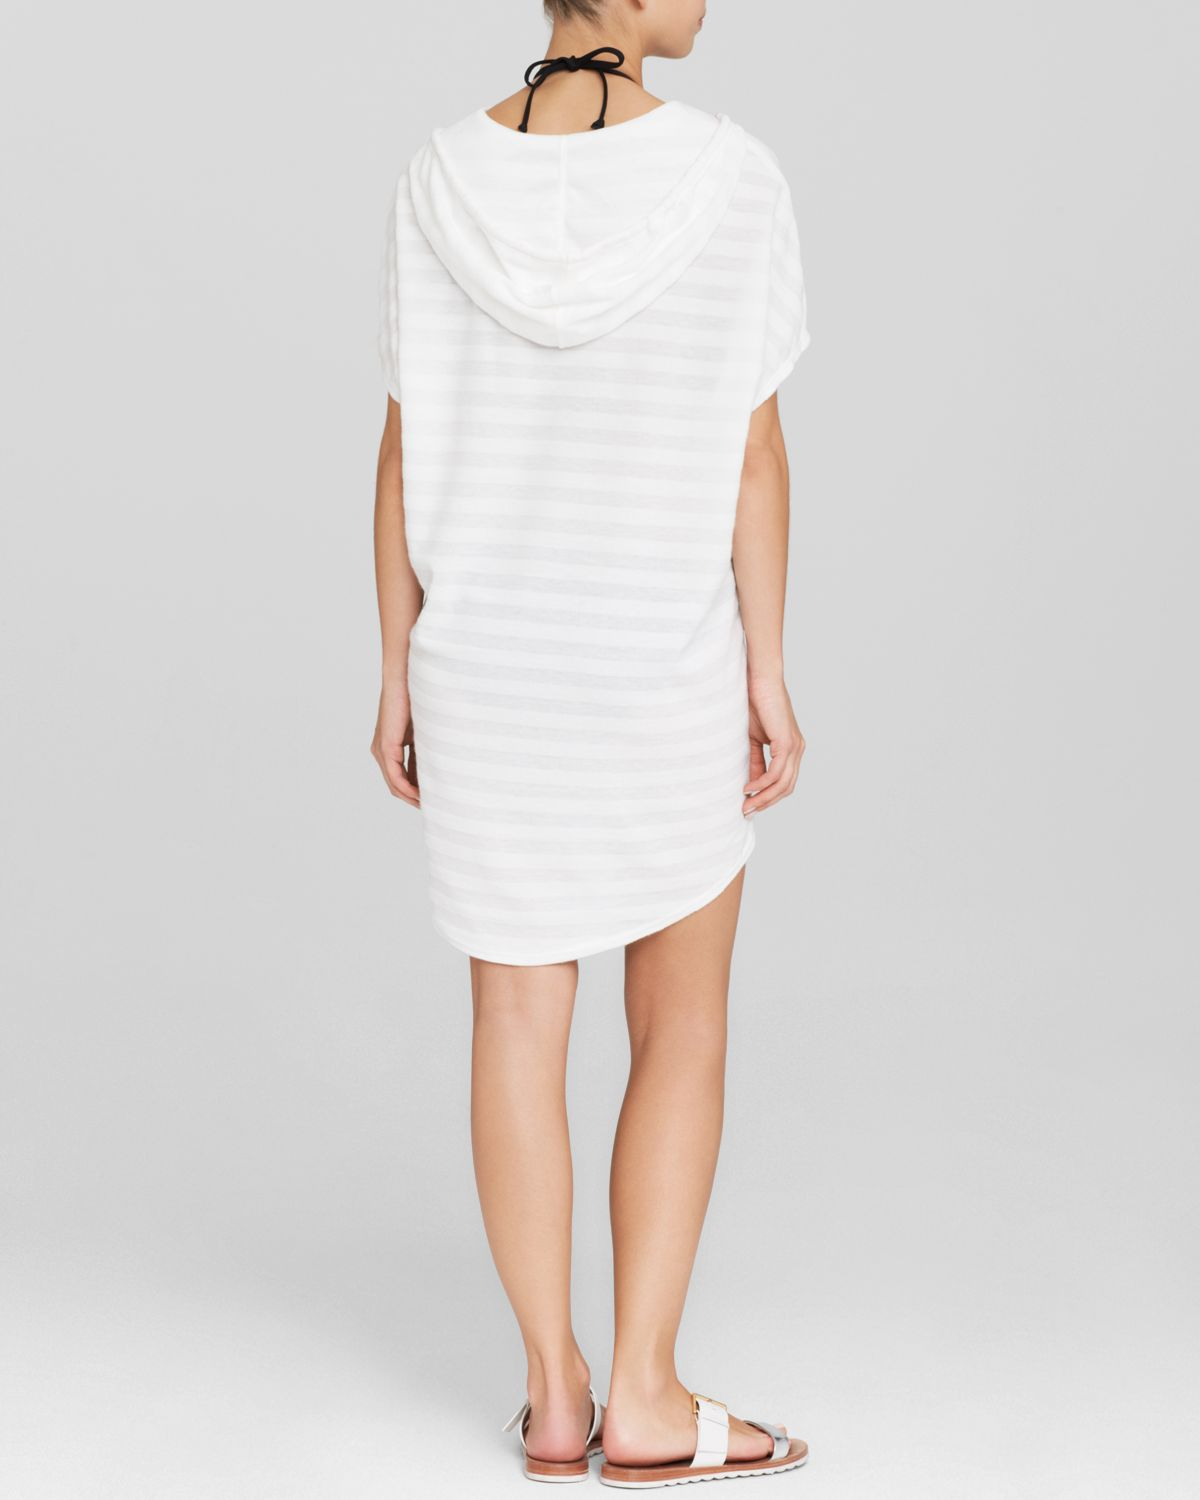 5a2e743624 Lyst - J Valdi Hooded Swim Cover Up Top With Kangaroo Pocket in White